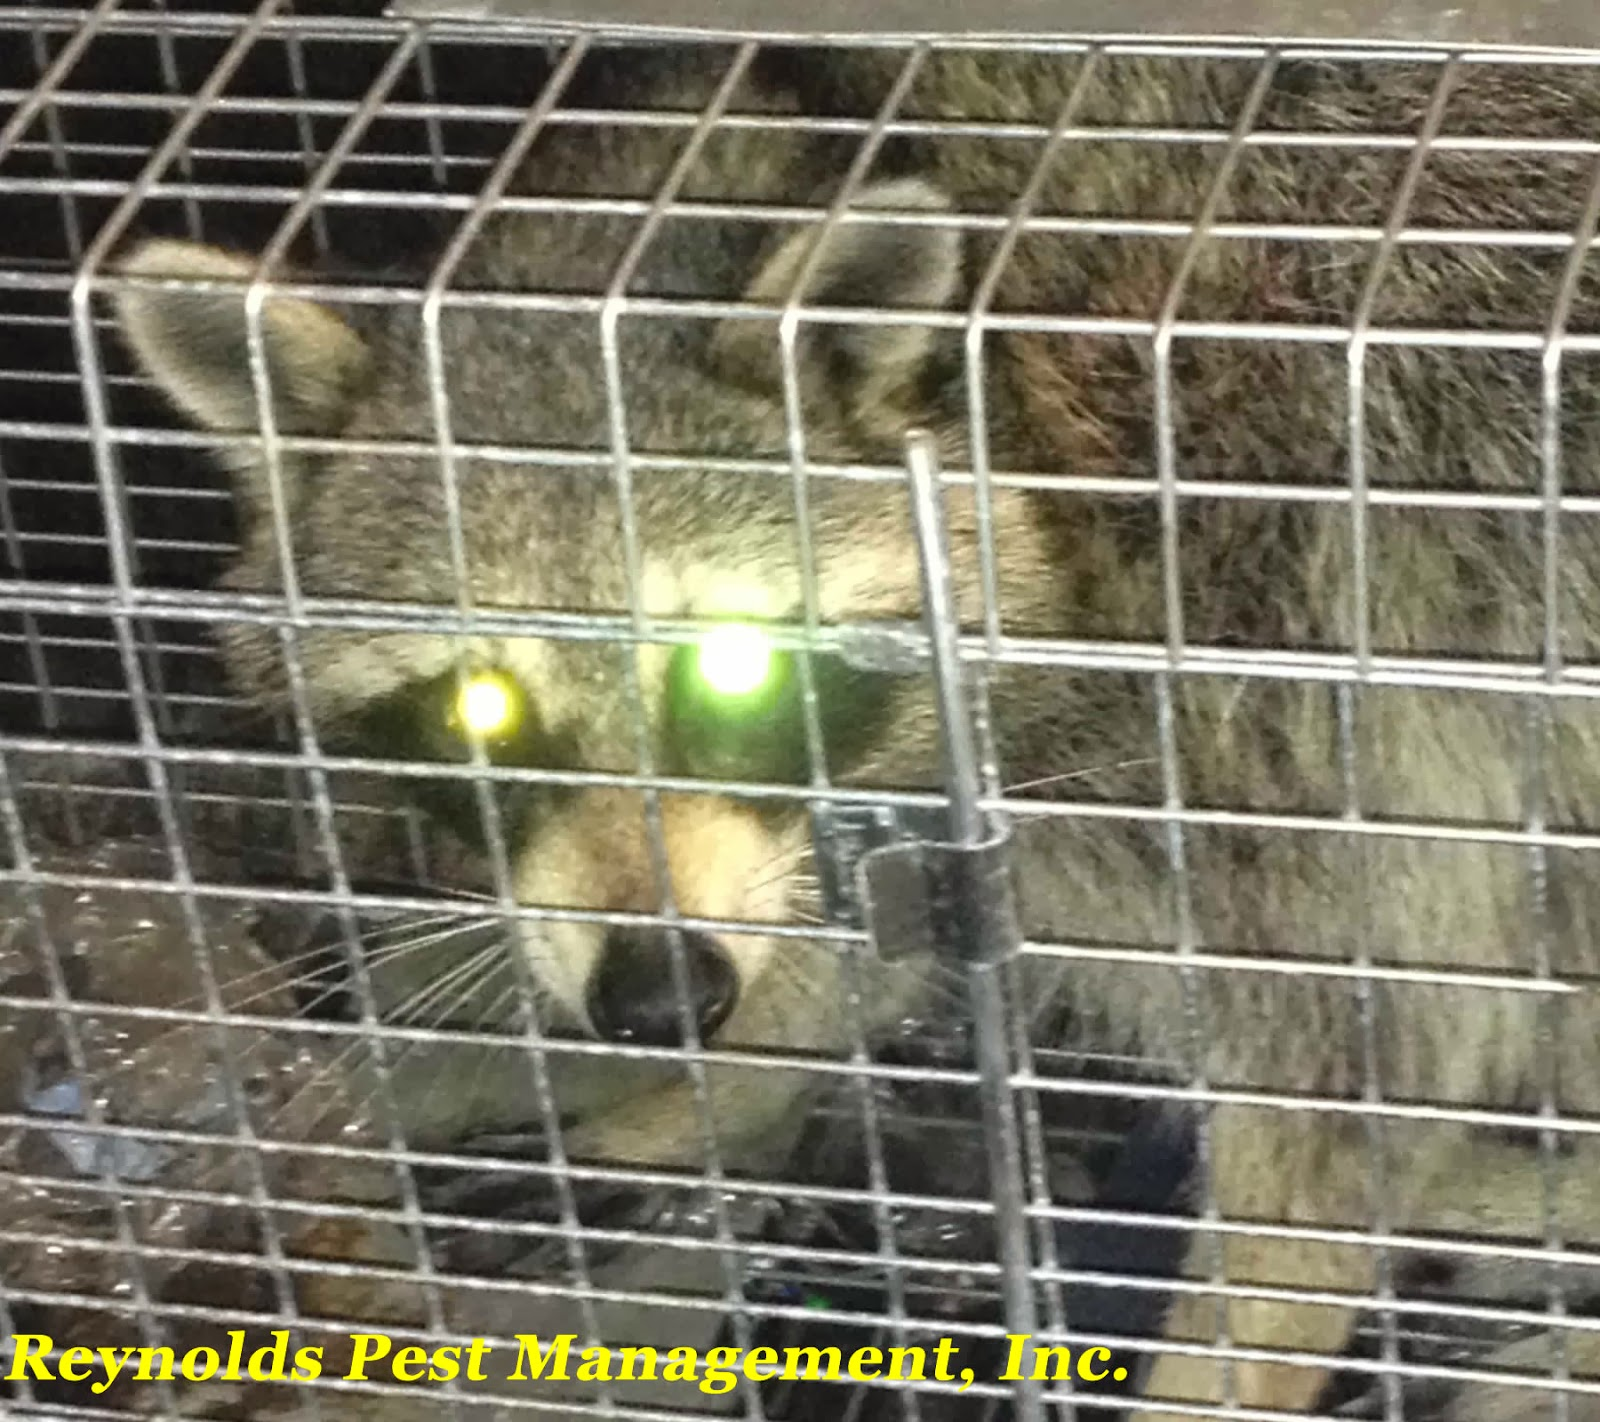 Raccoon Control | Palm City, Stuart, Jensen Beach, Hobe Sound, Saint Lucie, Palm Beach Counties